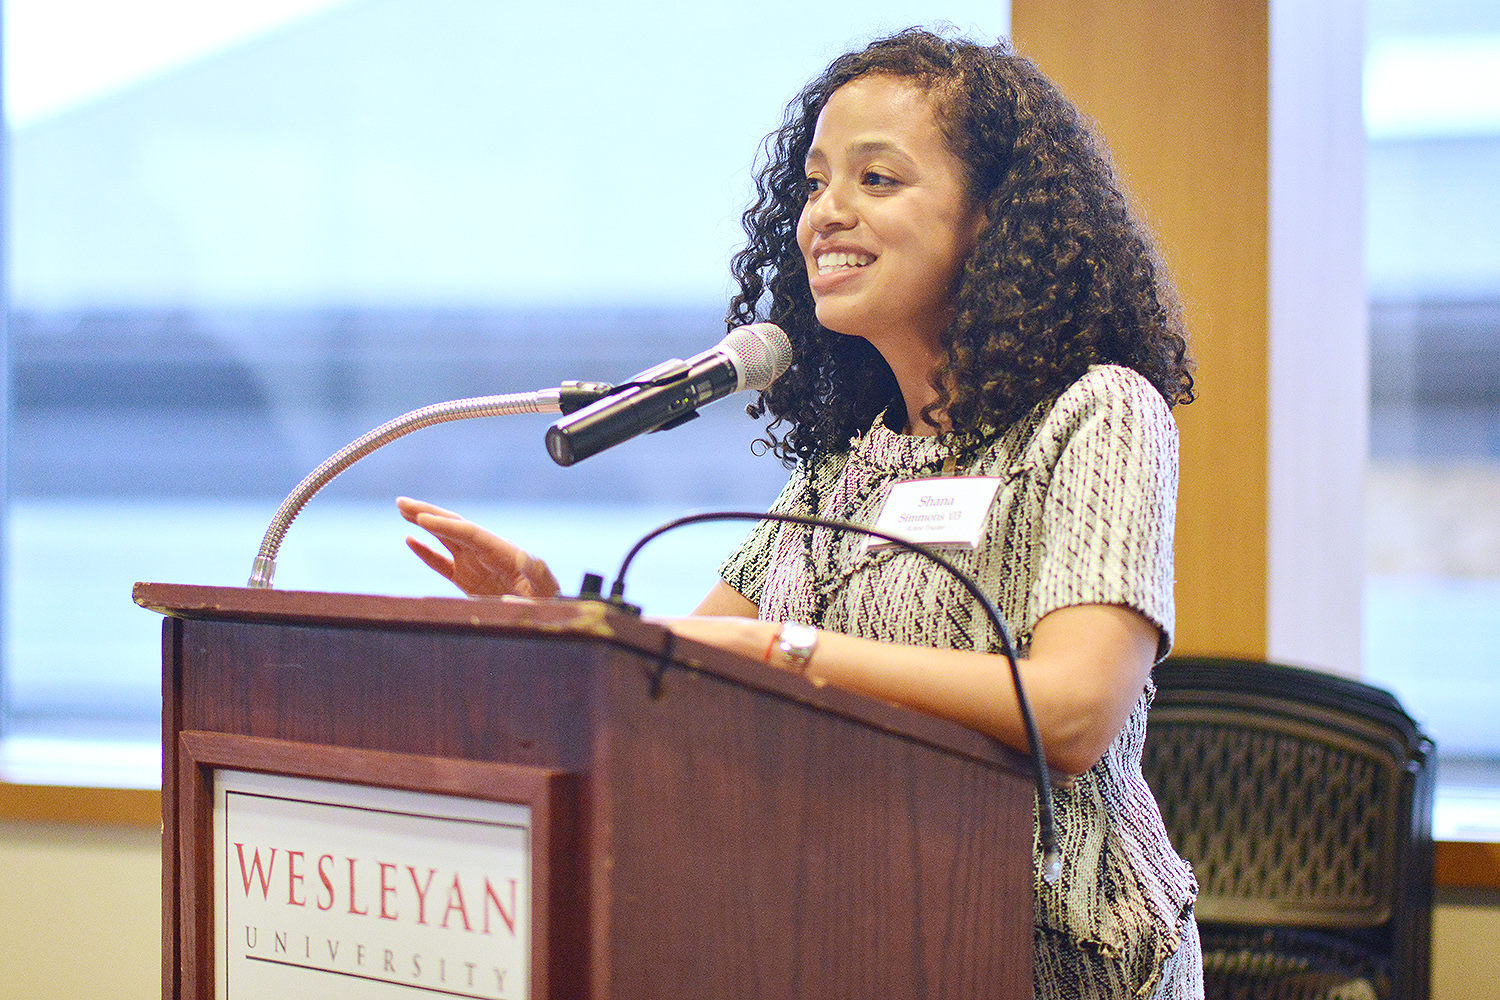 Wesleyan Trustee Shana Simmons '03 provided the keynote discussion during the Student of Color Dinner on April 12. The SOC dinner provides an opportunity for newly admitted students to learn about various Wesleyan affinity groups, organizations and offices on campus that provide student services.